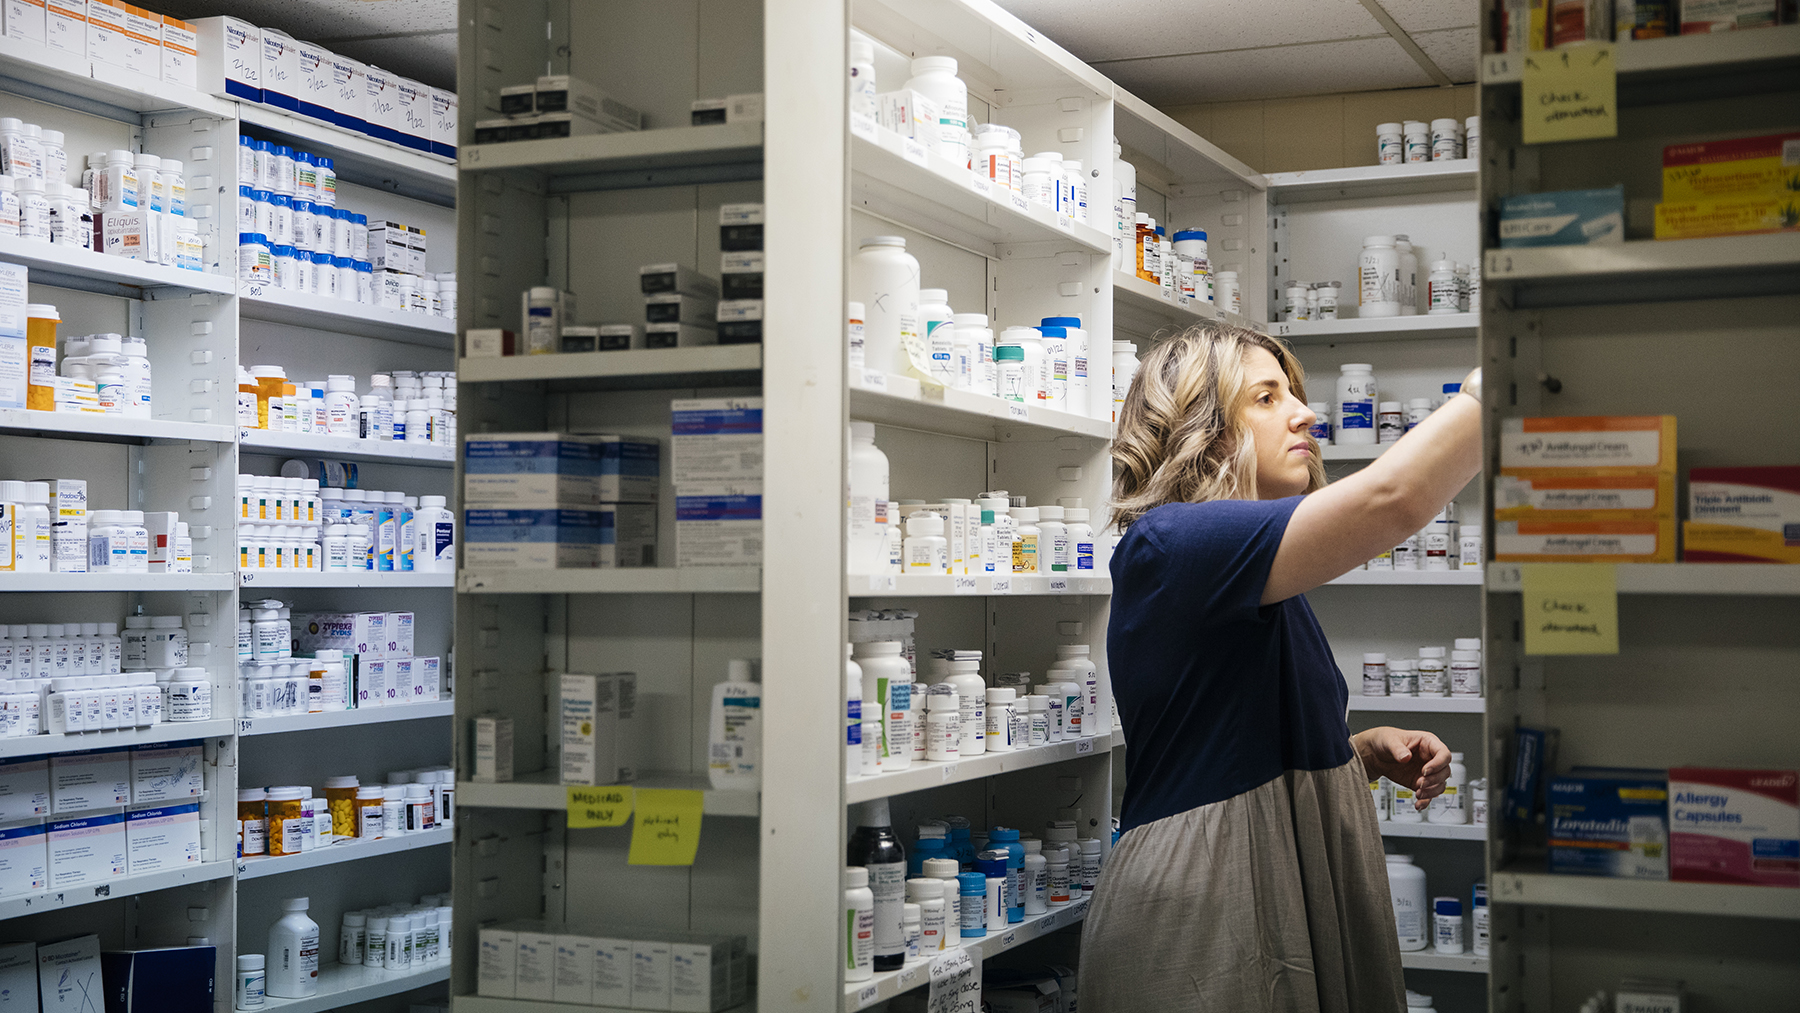 Pharmacist Brooke Kendall stocks medicines at Cape Fear Clinic in Wilmington, North Carolina, in October 2019. Free clinics, like Cape Fear Clinic, serve patients that find it difficult to access care by other means. (Photo by Donnie Hedden for Direct Relief)